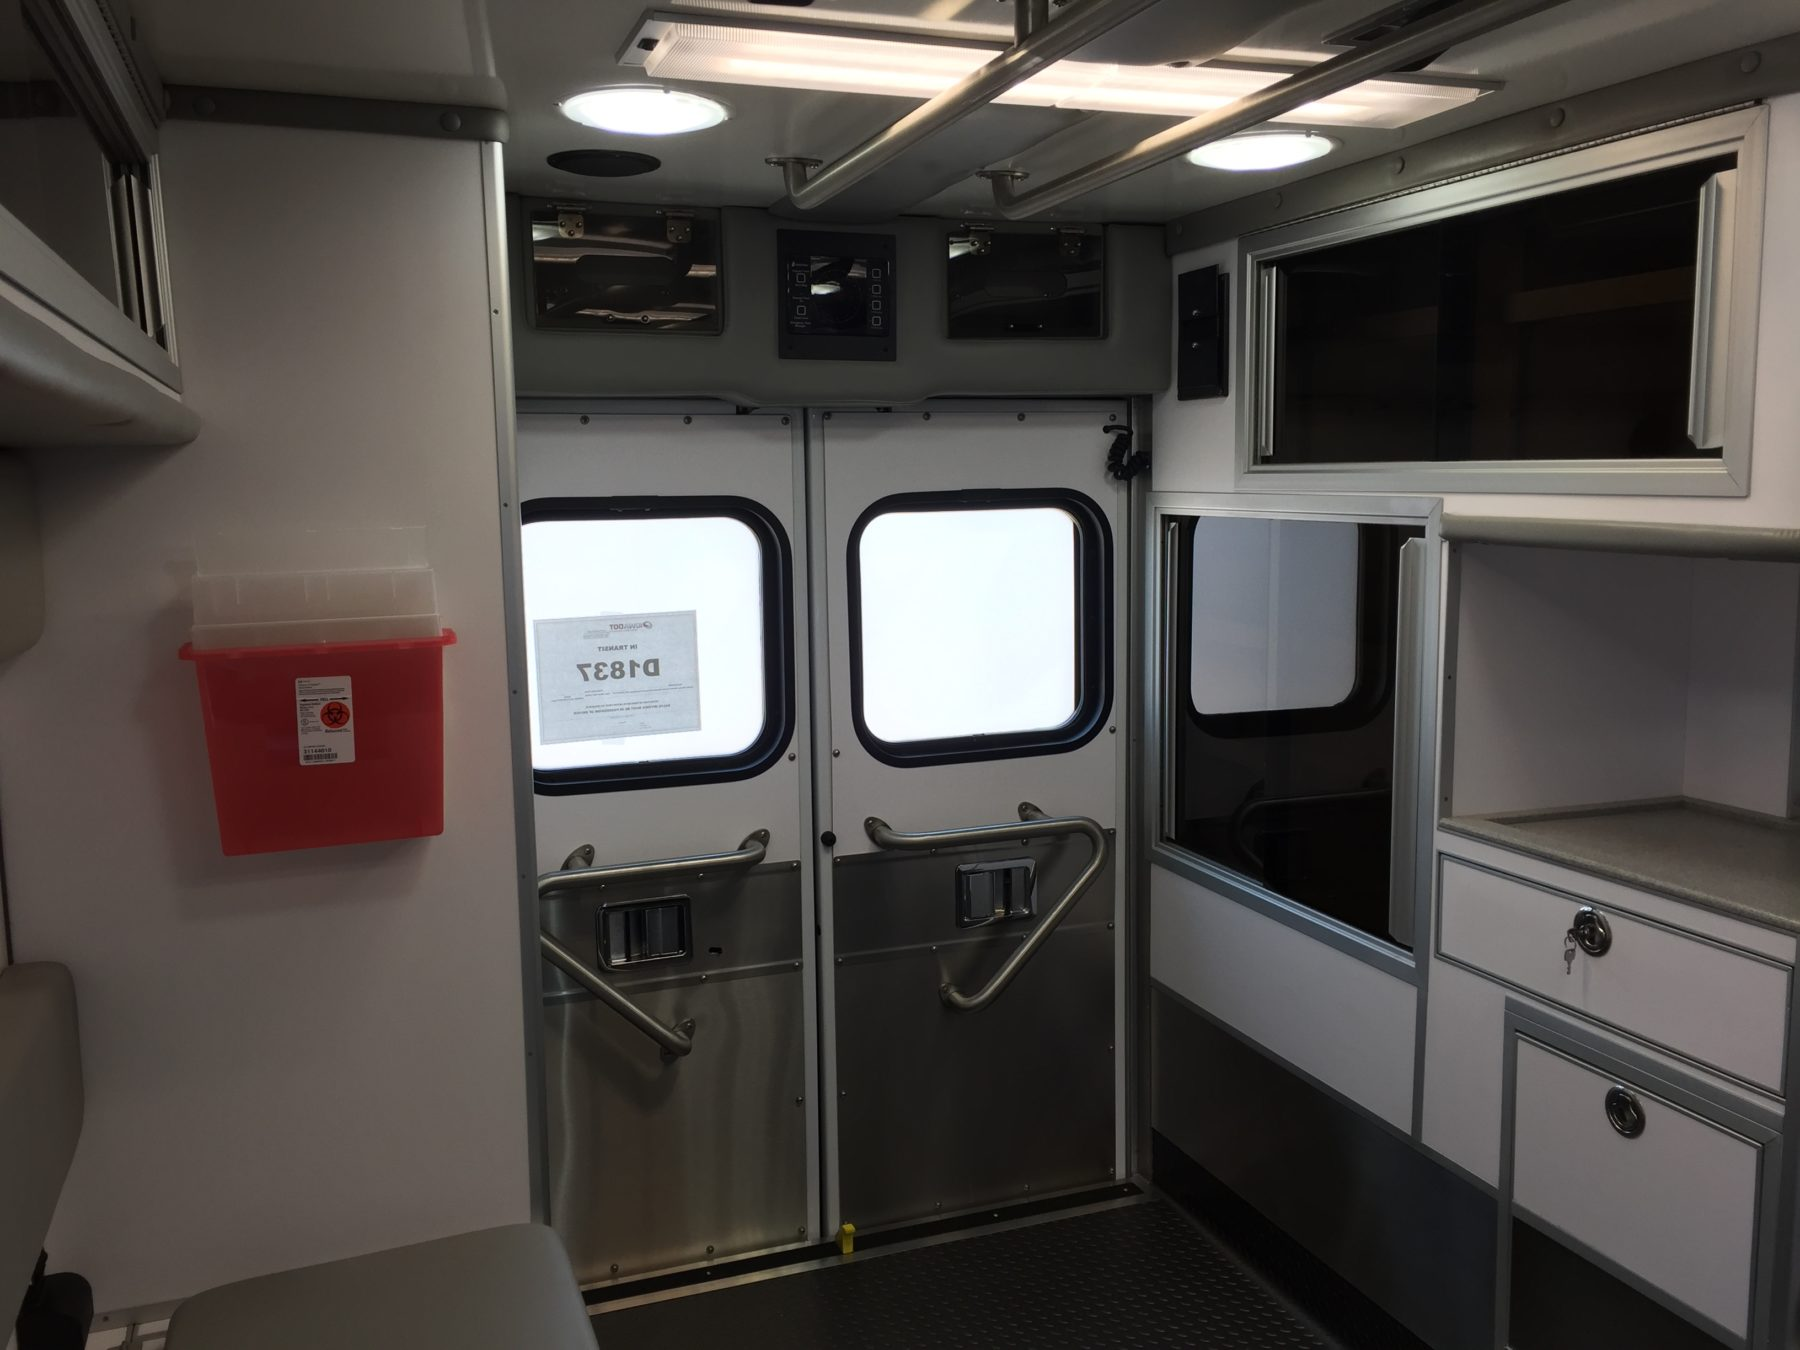 2017 Chevrolet K3500 4x4 Type 1 Ambulance For Sale – Picture 13